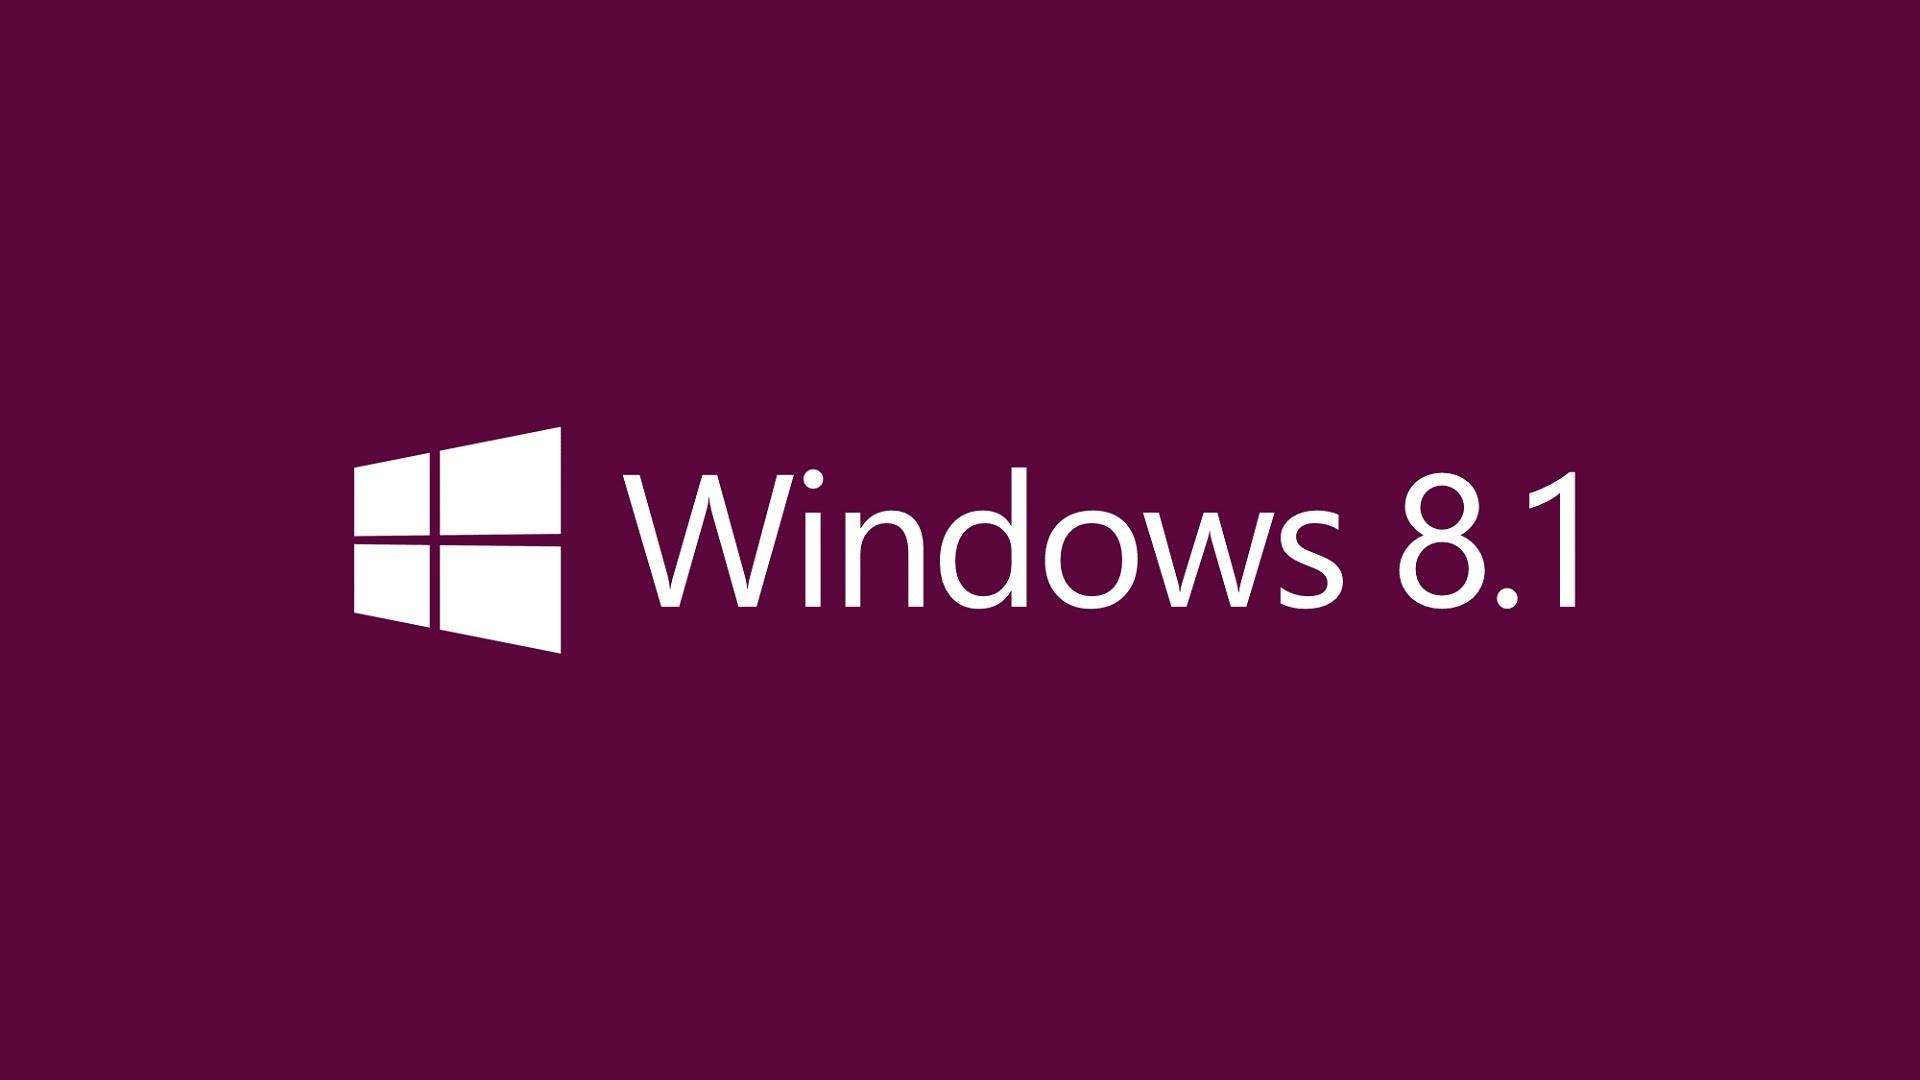 bg windows 8.1 - Descargar Windows 8.1 al formateo Iso